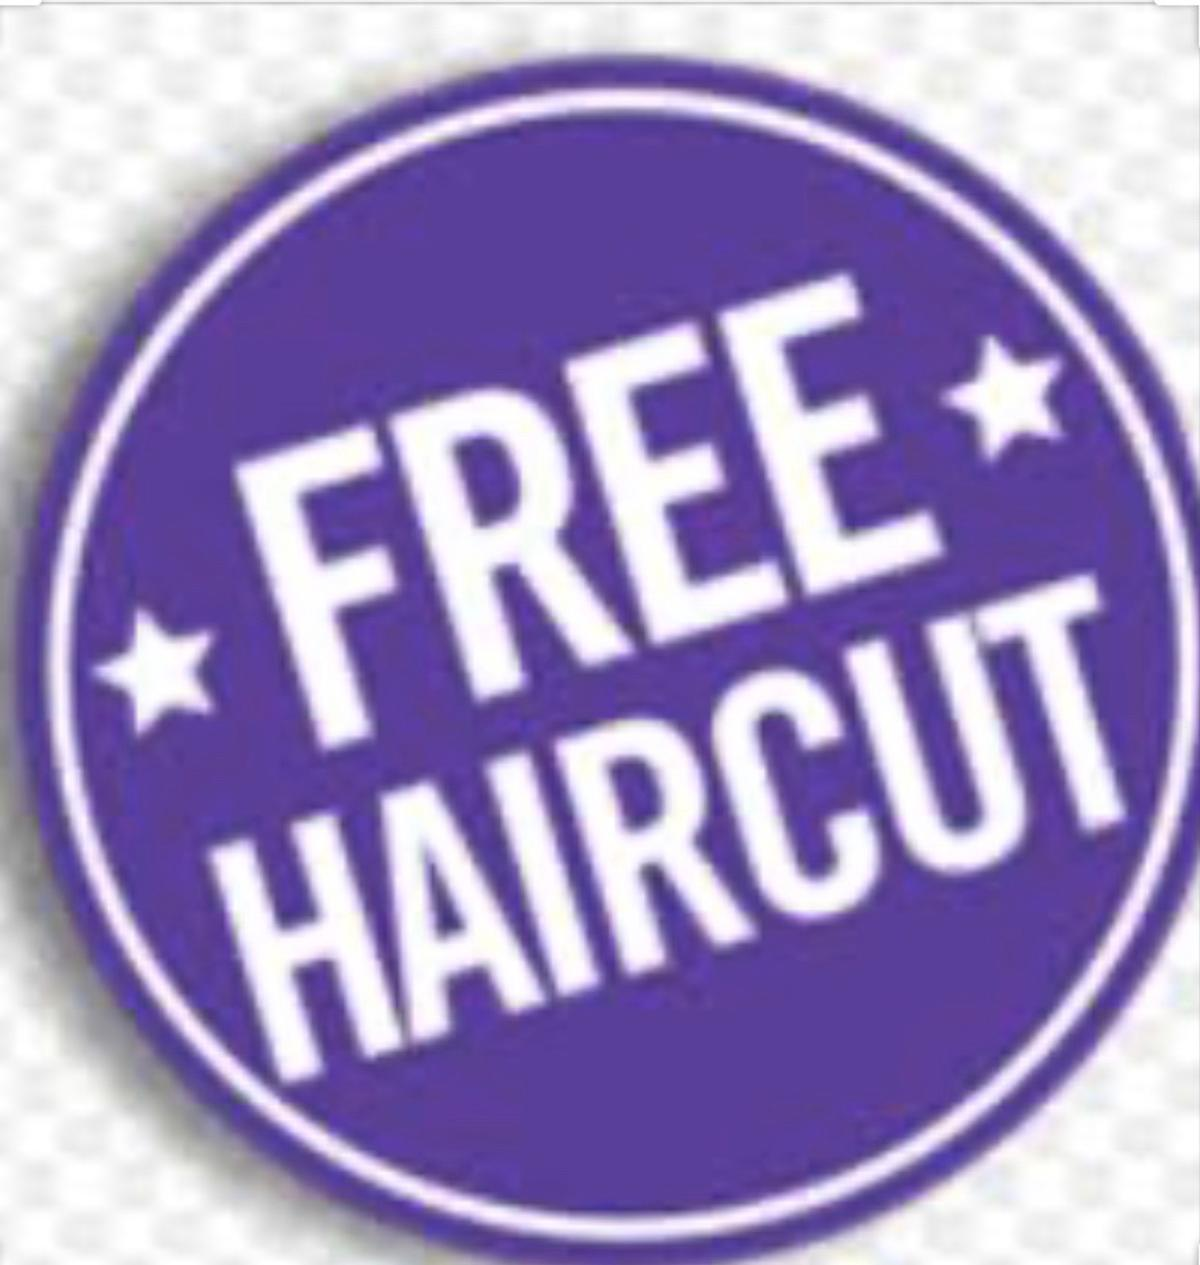 Models needed for haircuts or colour, completely free of charge. Location based in NW1 Camden Town. Not taking any appointments till June/July but please feel free to send me an offer or message if you would be interested in coming in, or if you just have any questions Thanks for looking :)